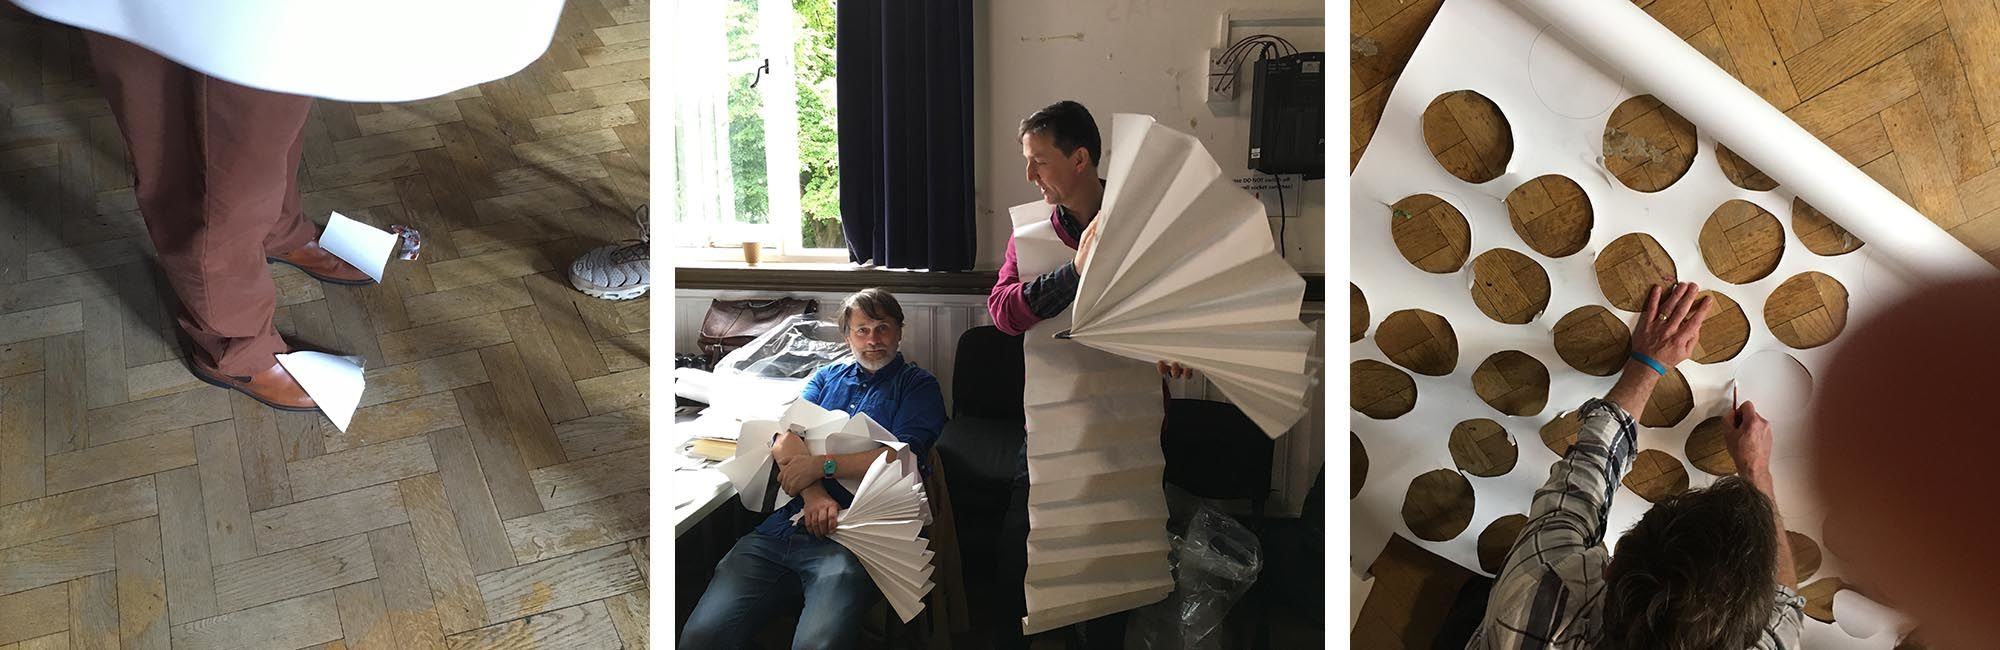 Staff and students experiment with paper to create costumes inspired by Xanti Schawinsky's Play Life Illusion during an Open Stage programme workshop at Camberwell in the autumn term.